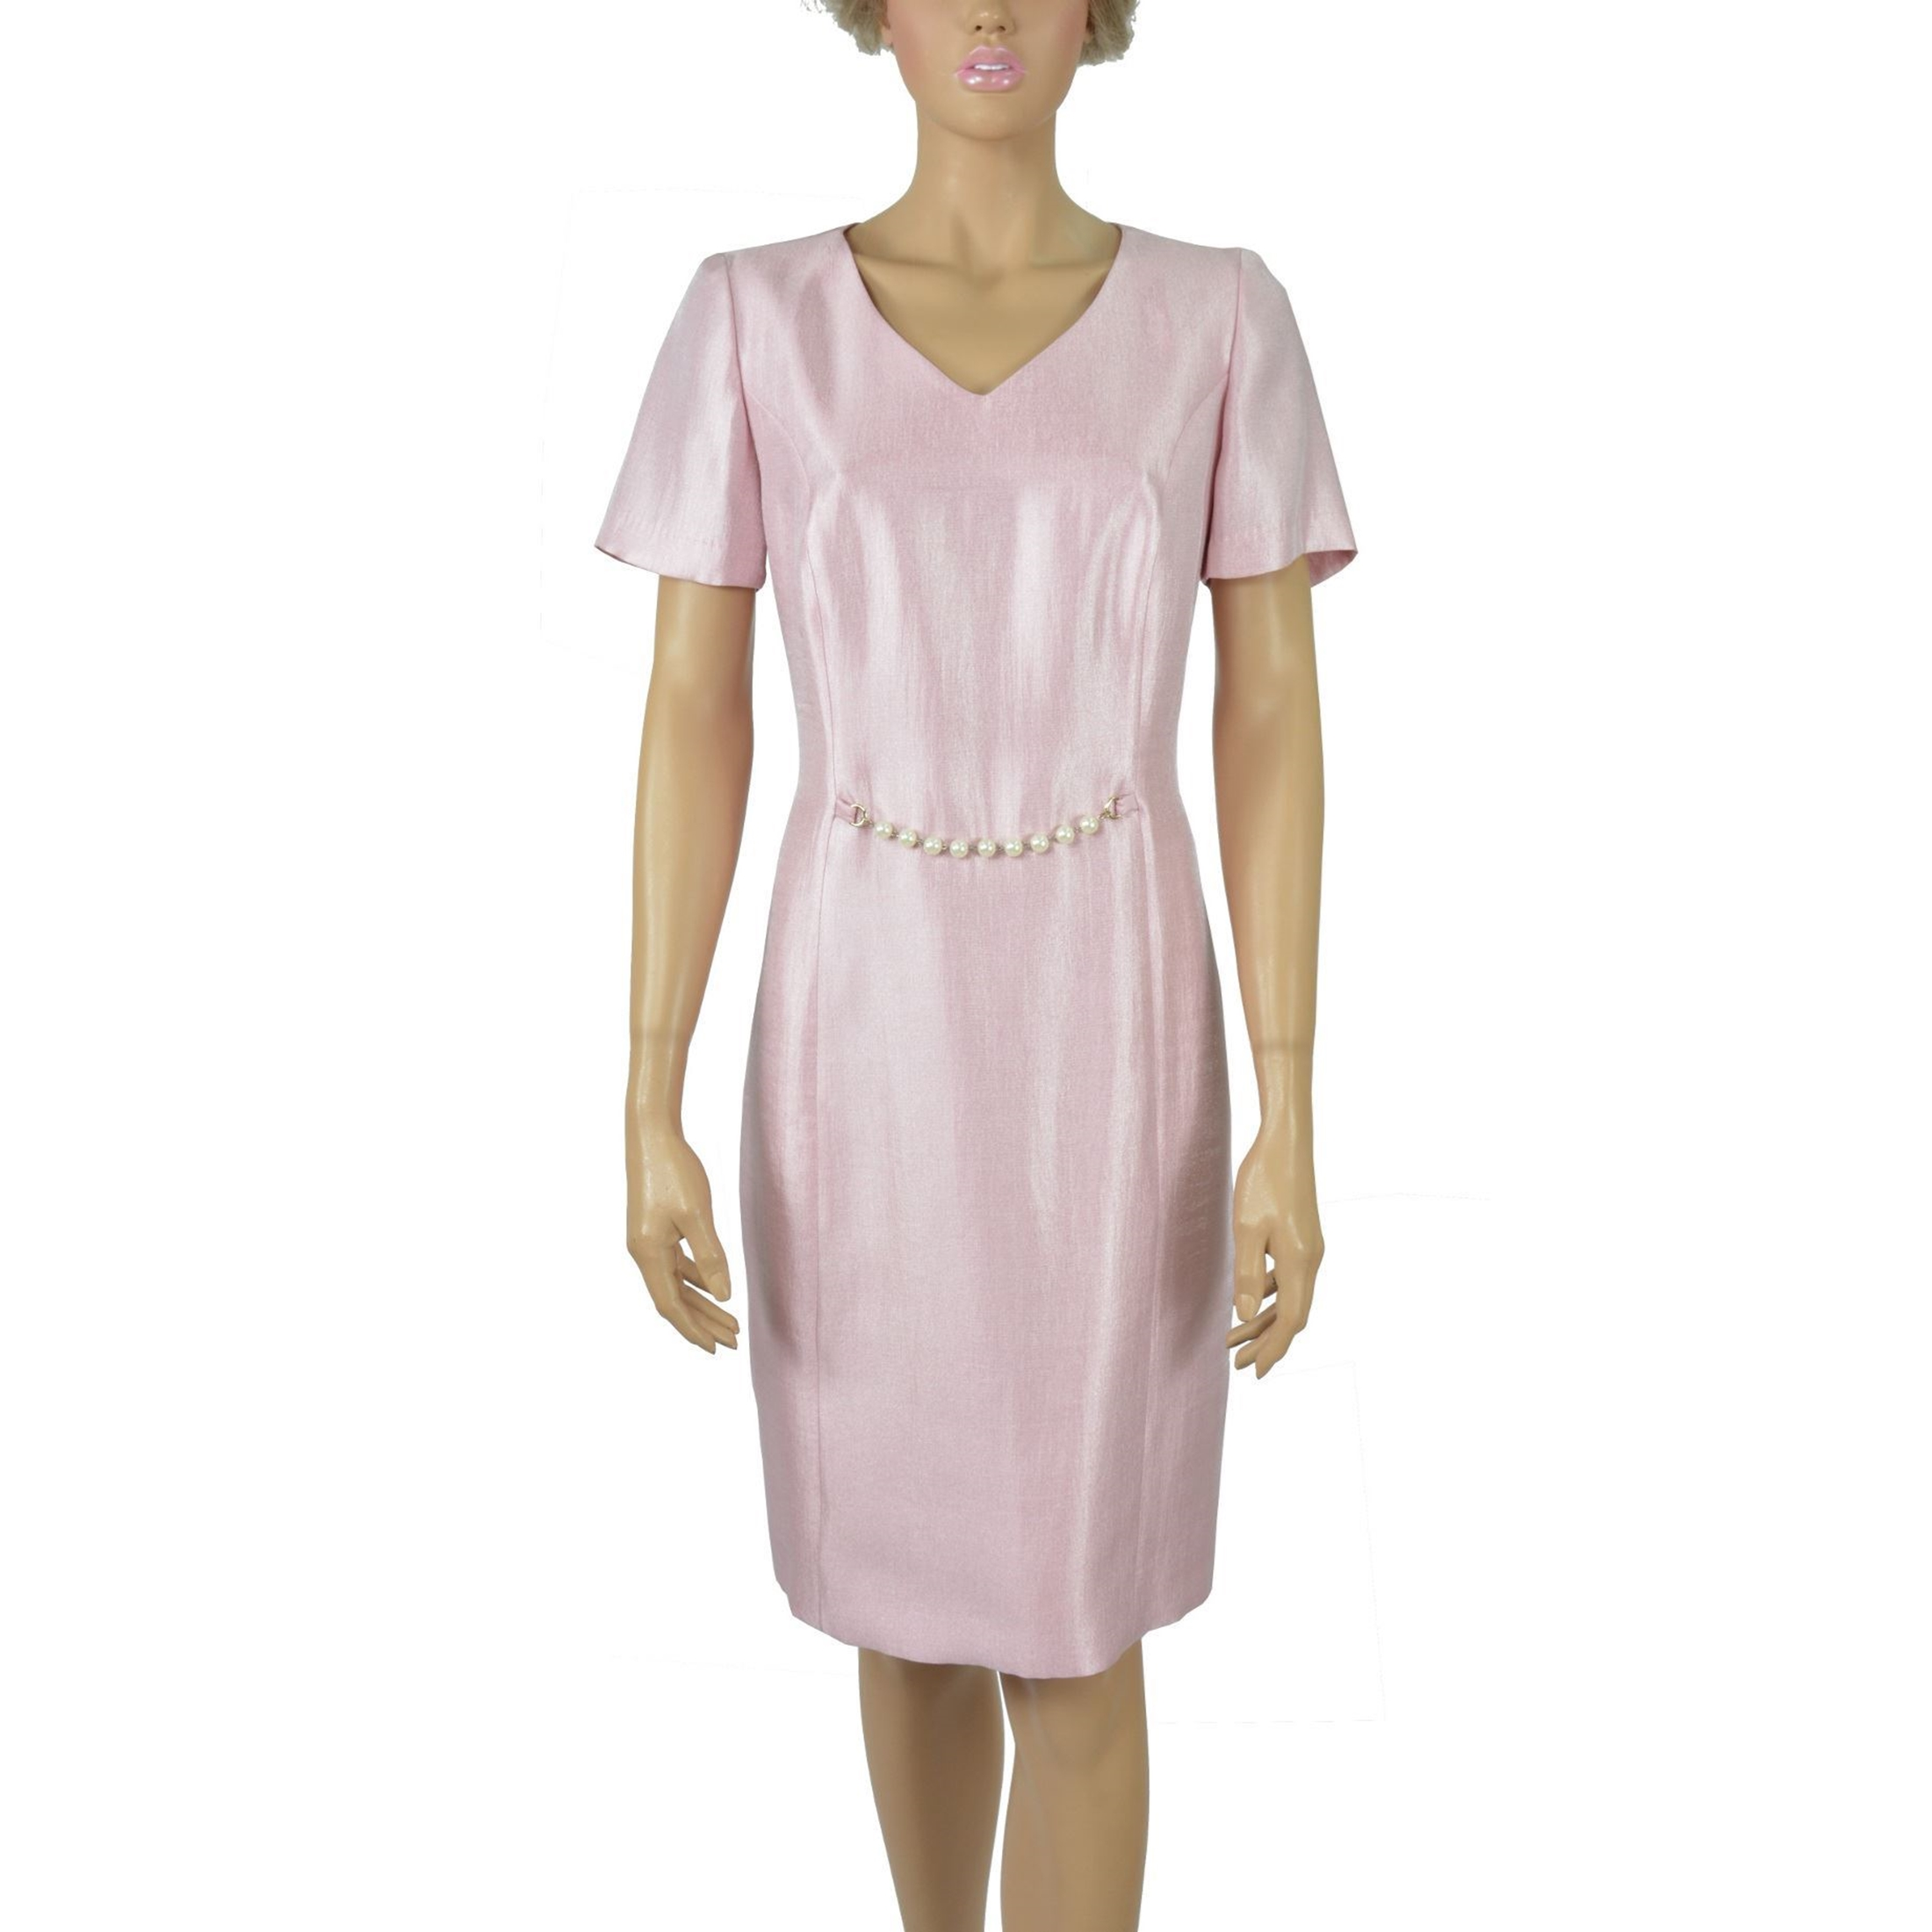 Picture of Women's Dress - LM451398